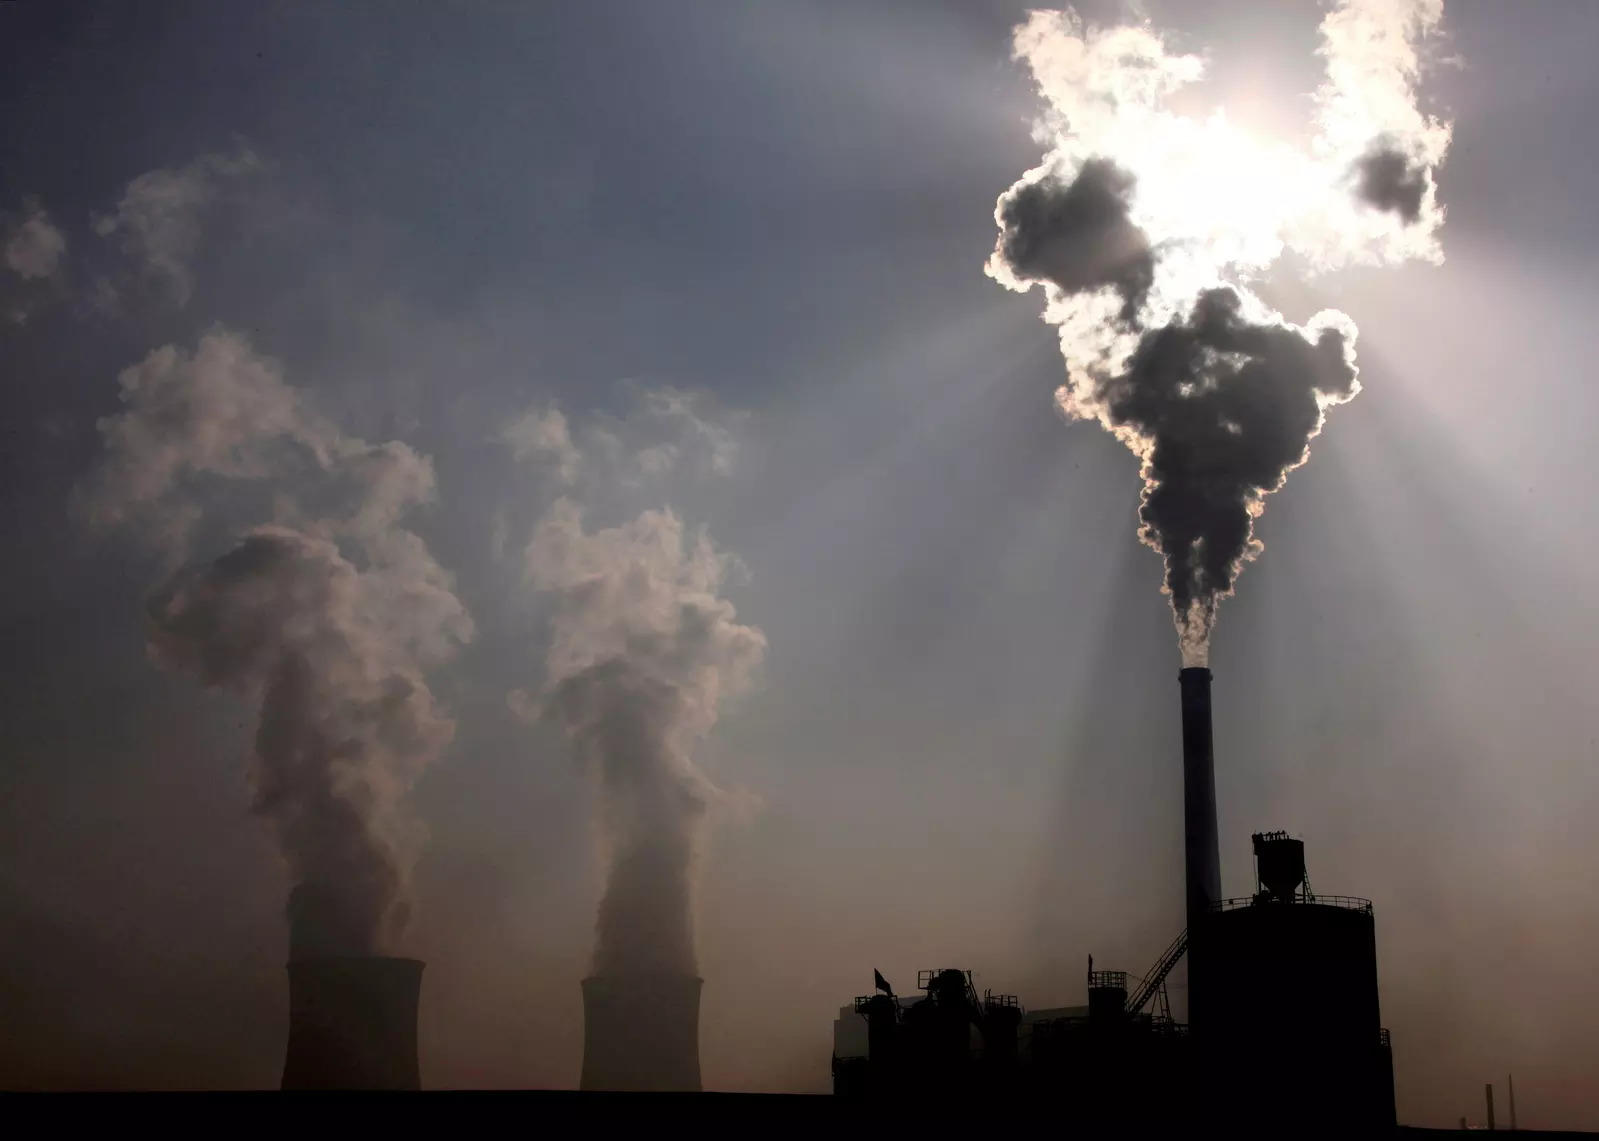 China must halve power sector emissions by 2030 to meet climate goals: study